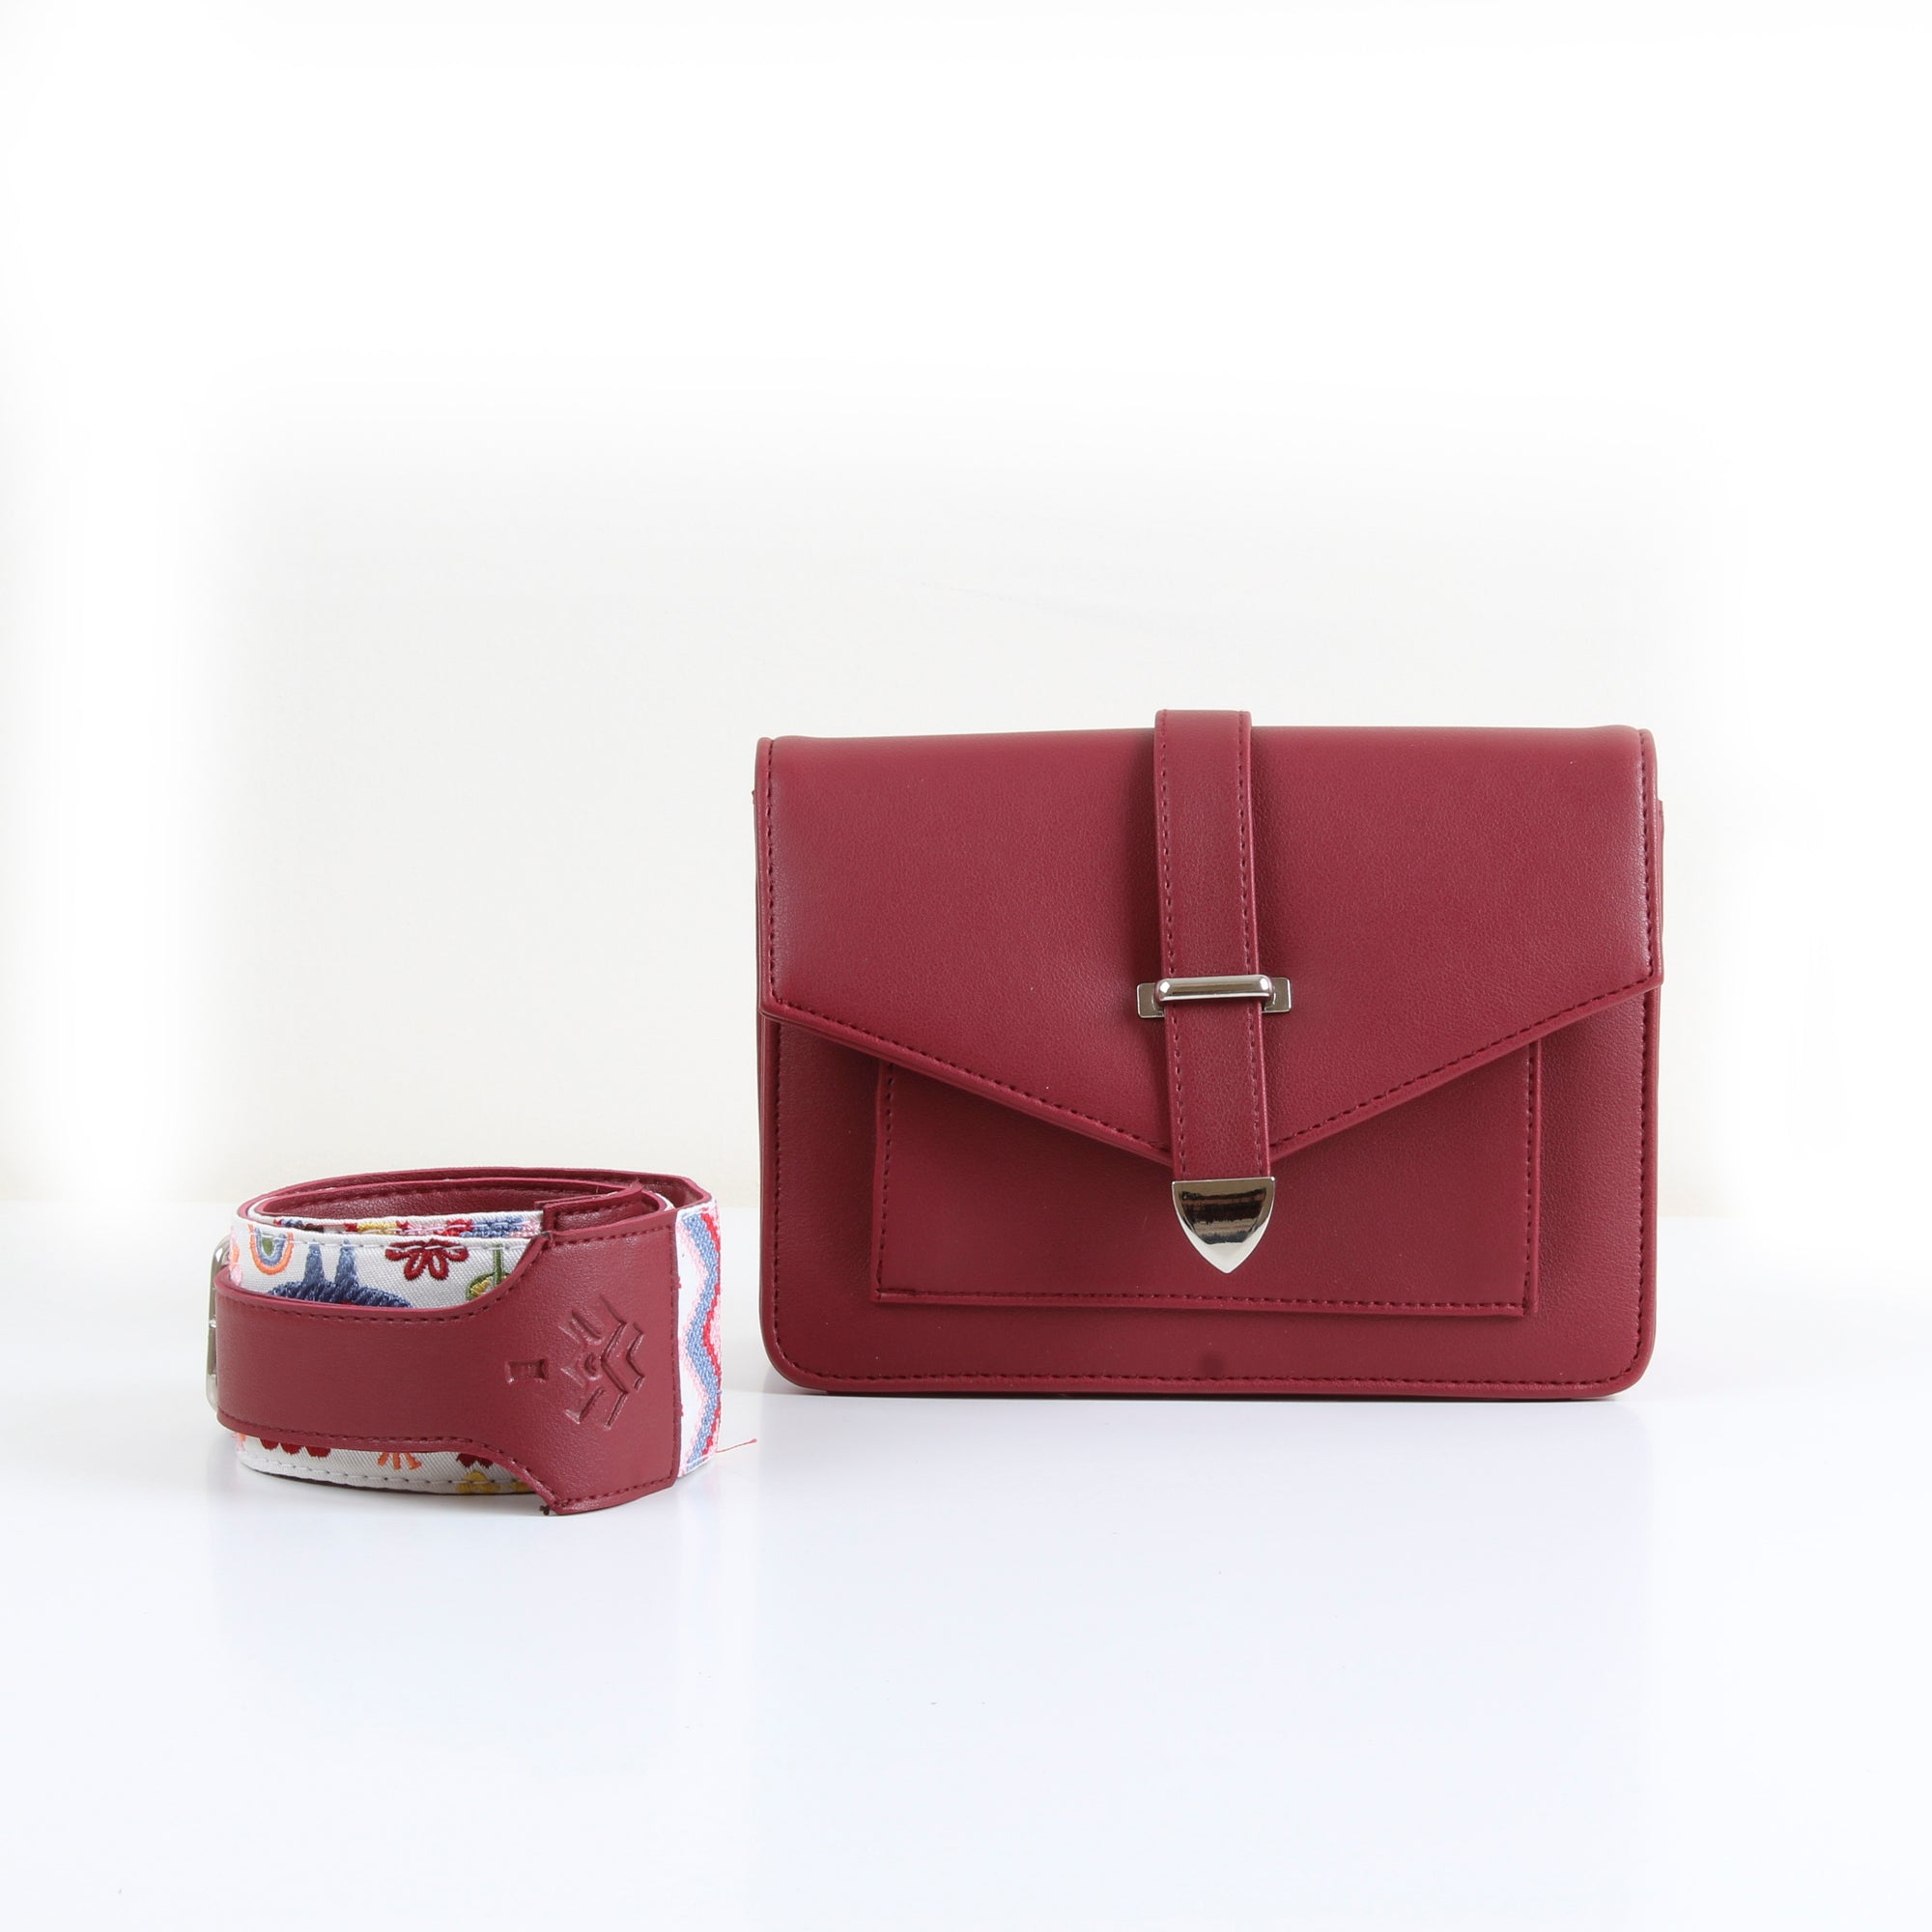 Town Cross-Bag Burgundy